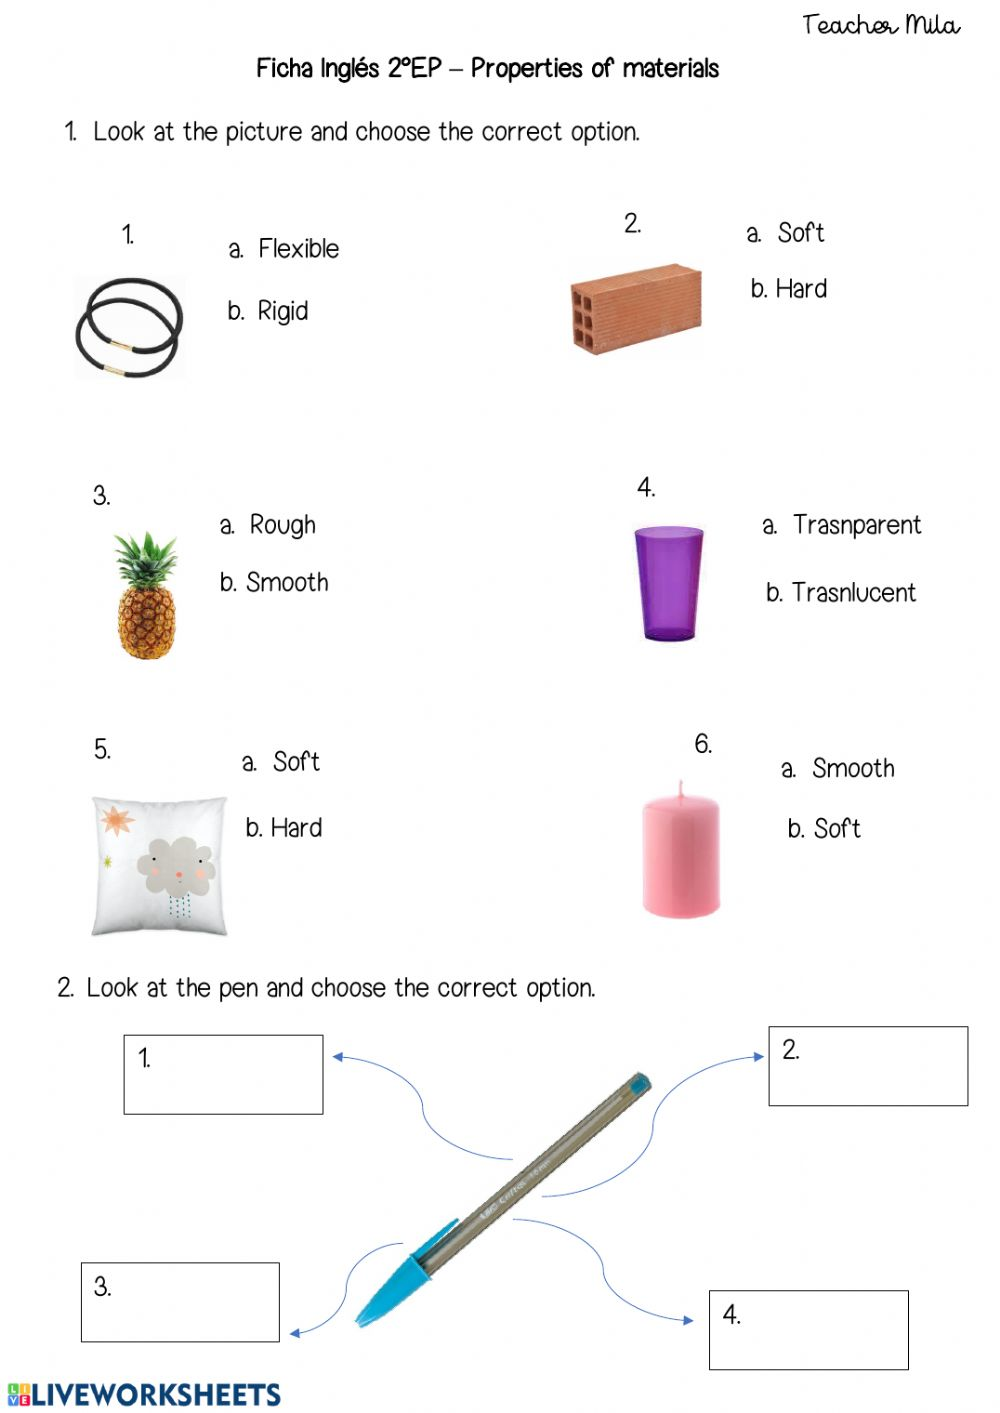 medium resolution of Properties of materials activity for 2ND GRADE